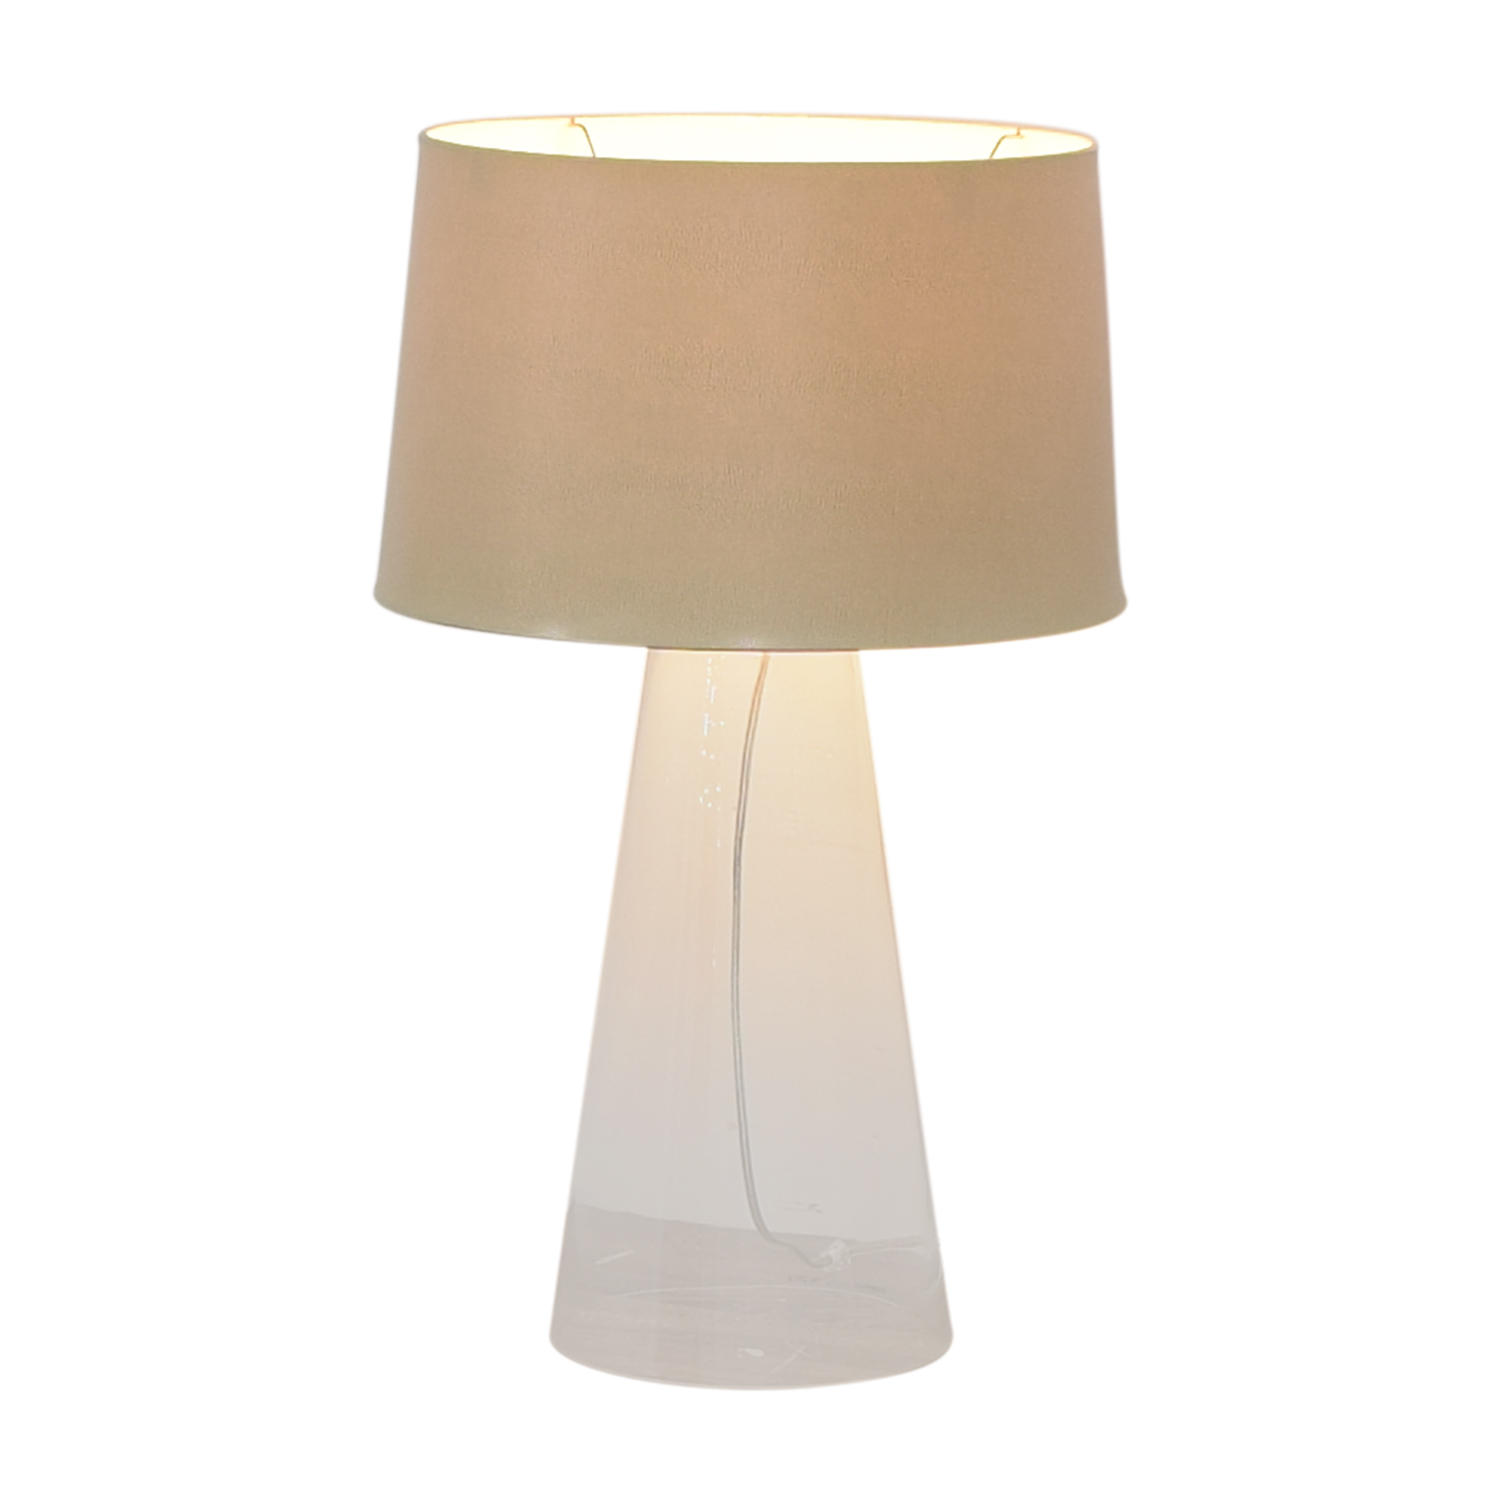 shop Crate & Barrel Table Lamp Crate & Barrel Decor